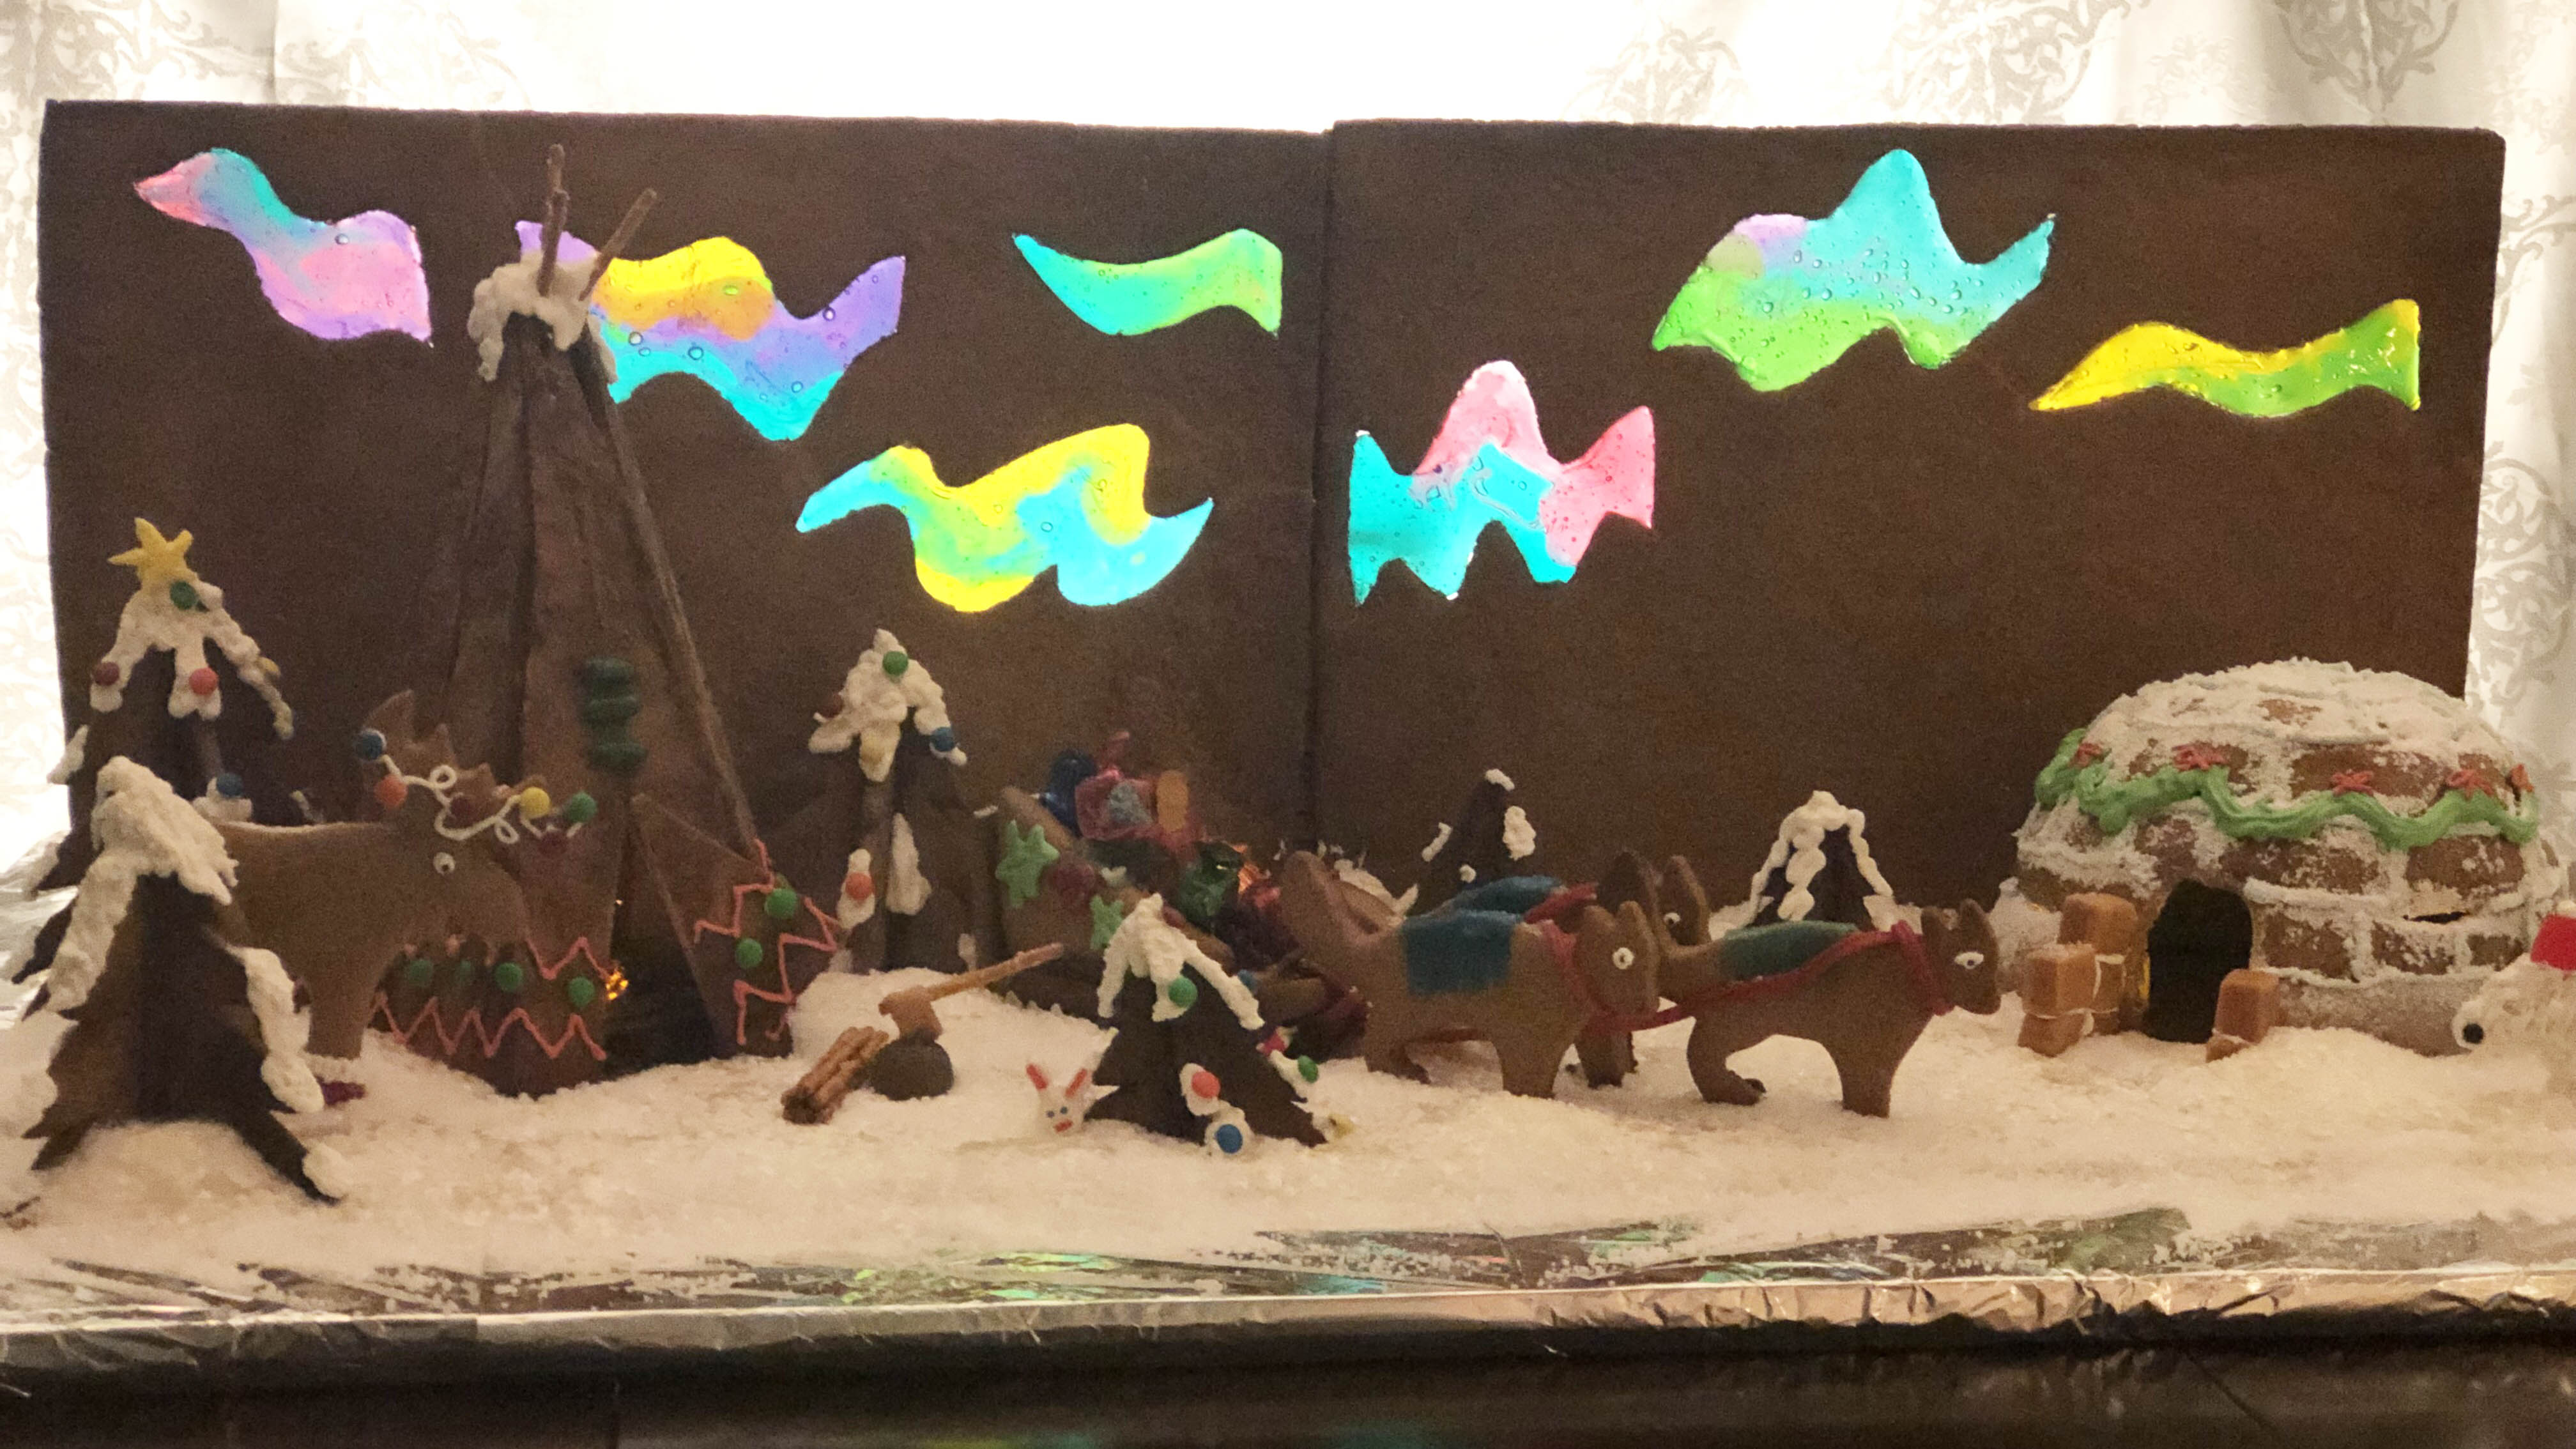 Northern lights glow in this entirely edible gingerbread scene.